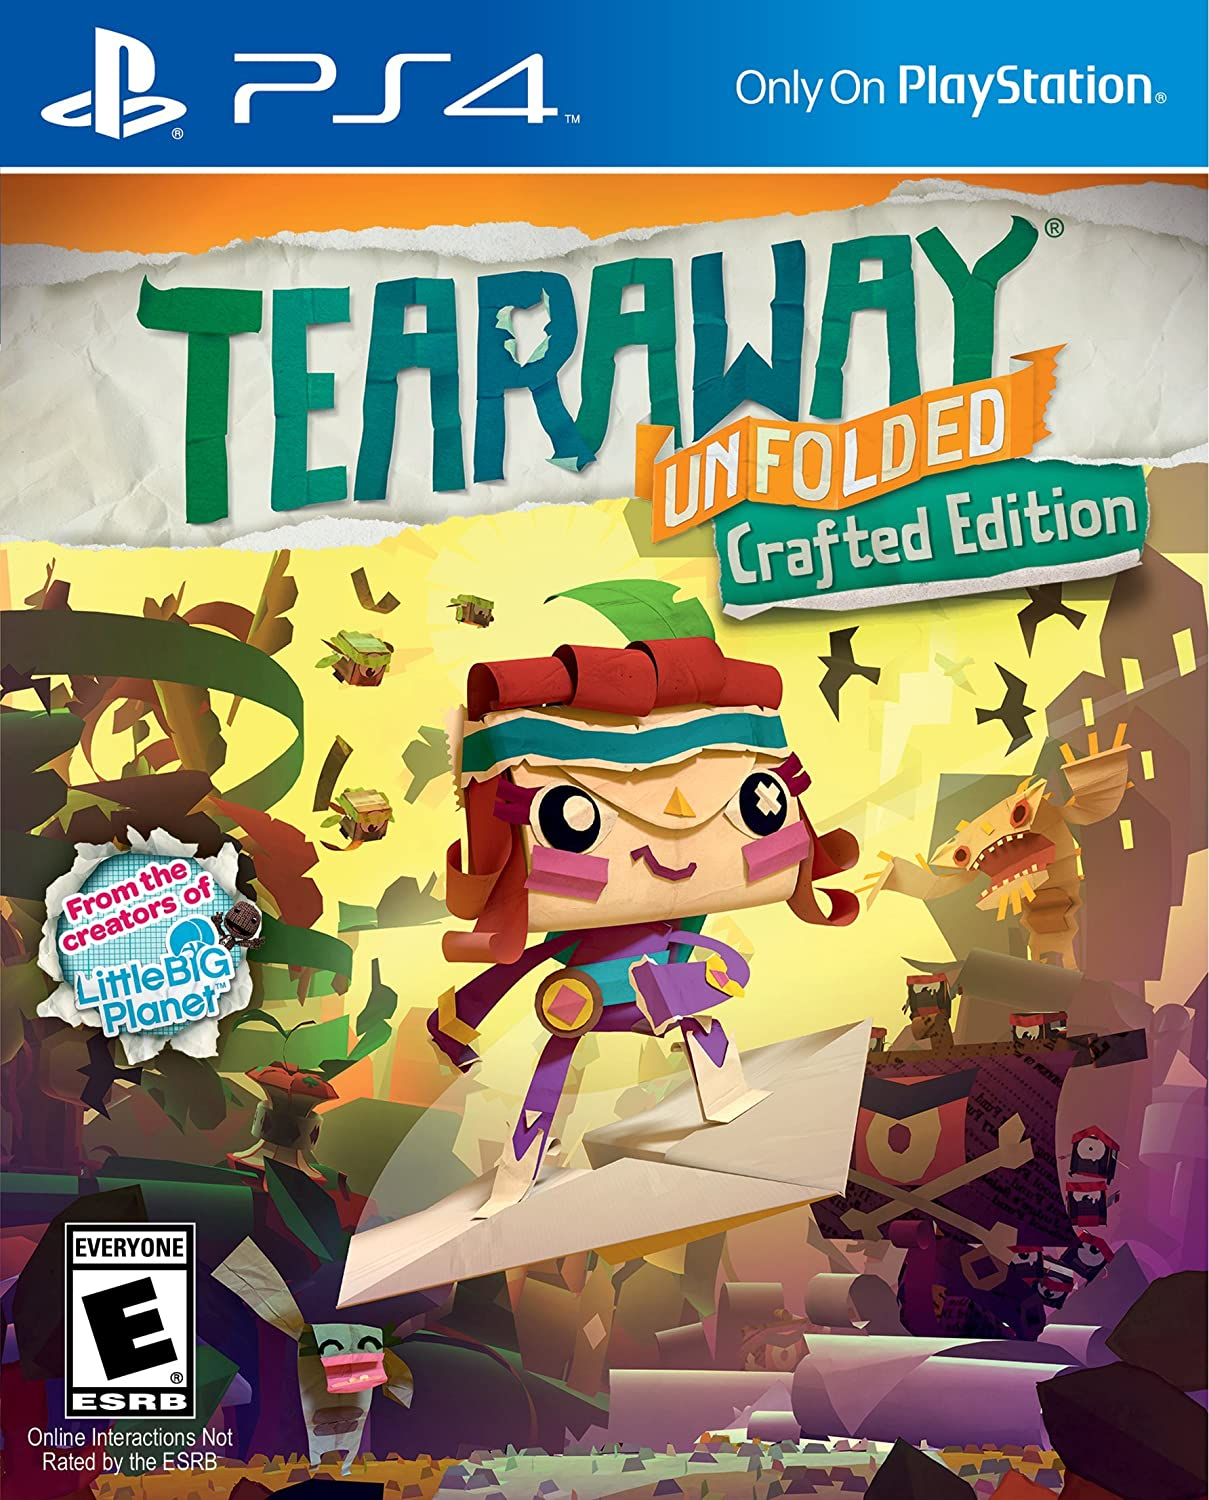 amazoncom tearaway unfolded playstation 4 sony computer entertainme video games - Ps4 Video Games